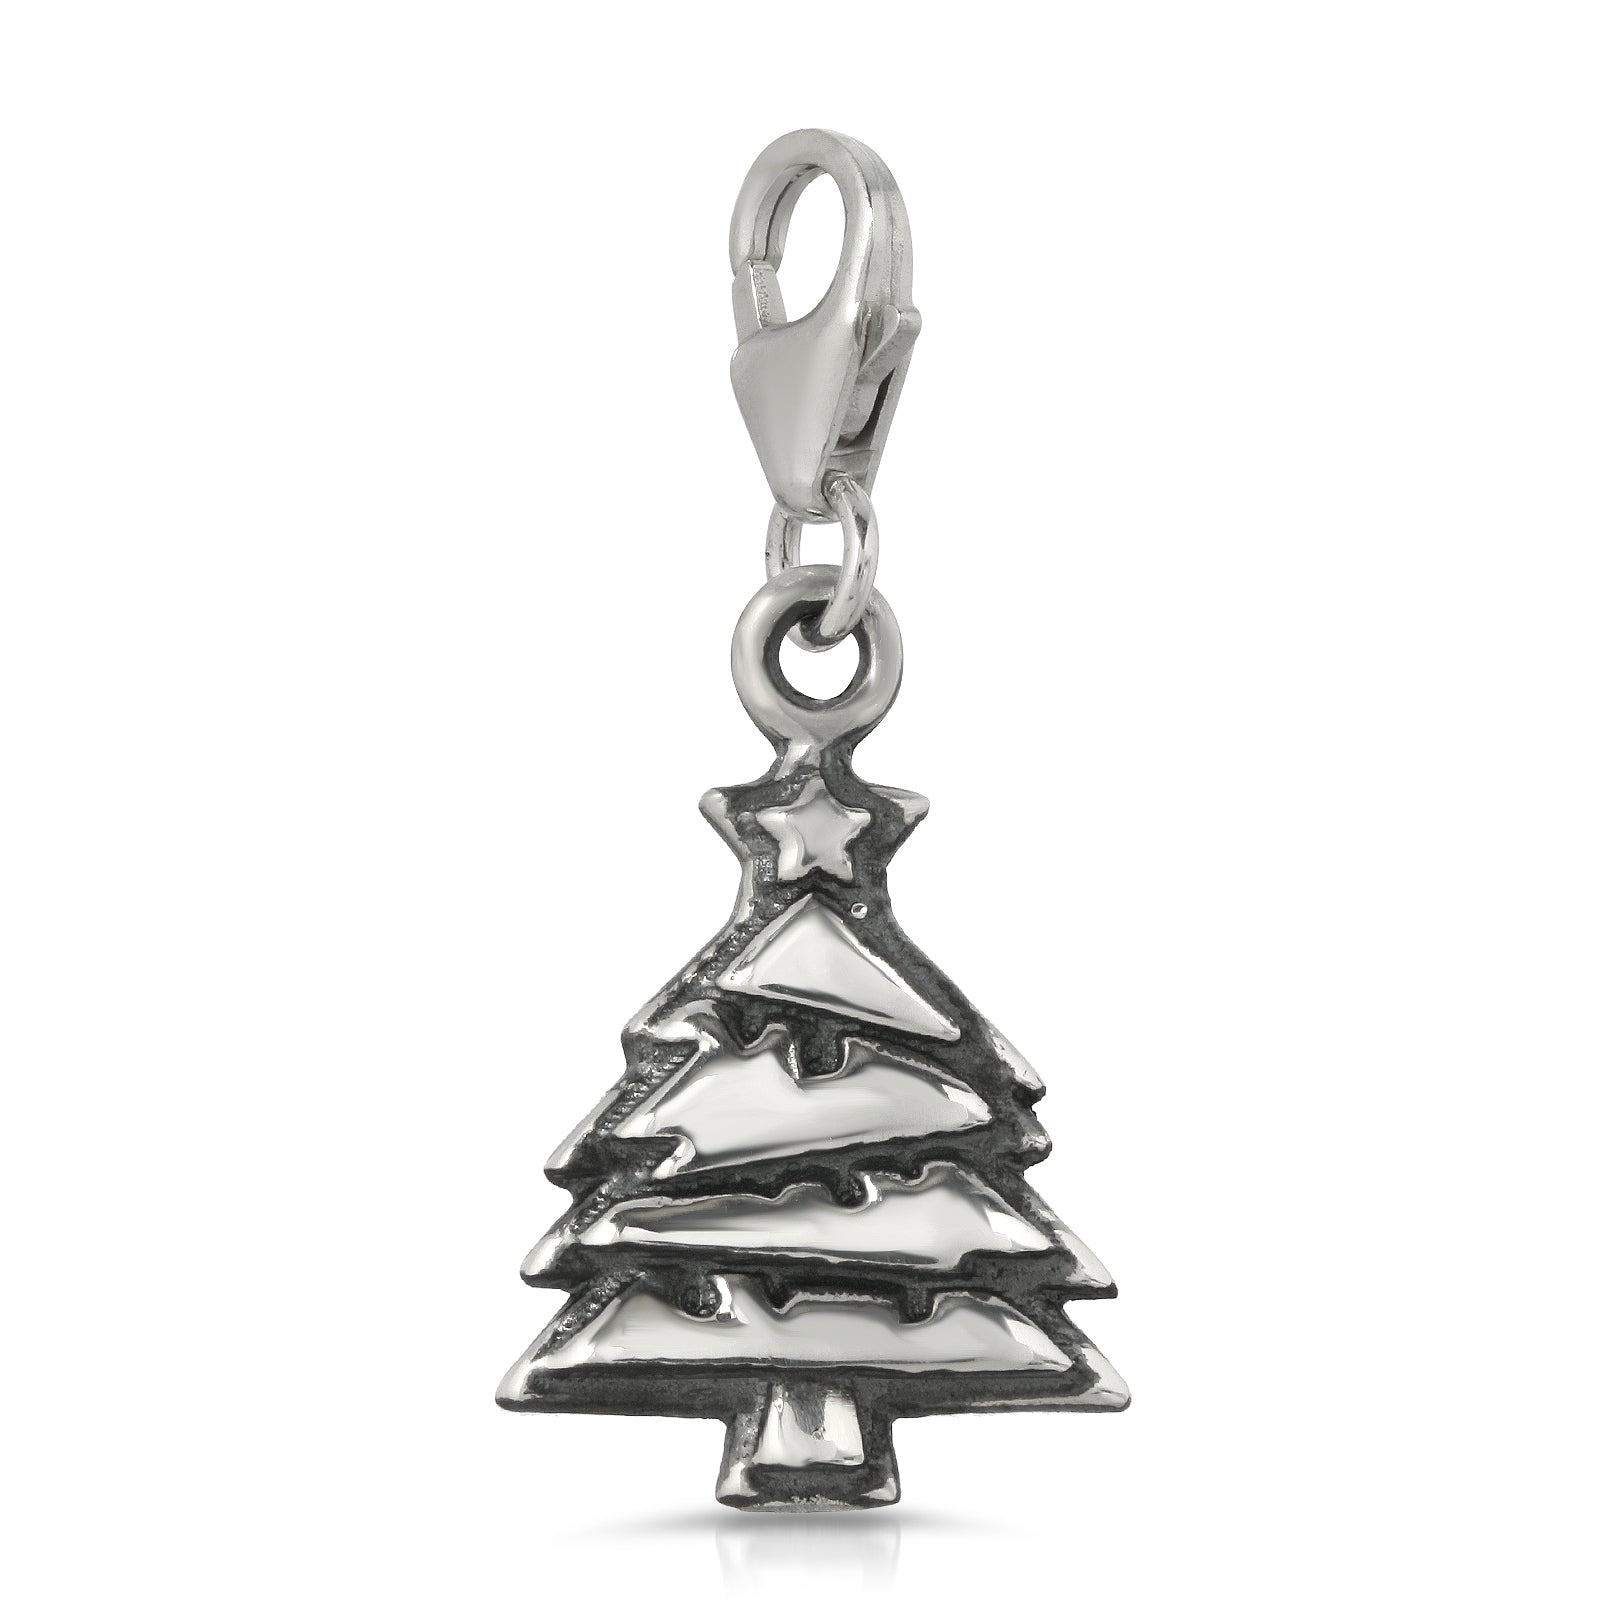 The W Brothers Premium Grade A 925 Sterling Silver Christmas Tree Charm Necklace, perfect for a fashionable statement for men and women's jewelry accessory. Available at www.thewbros.com